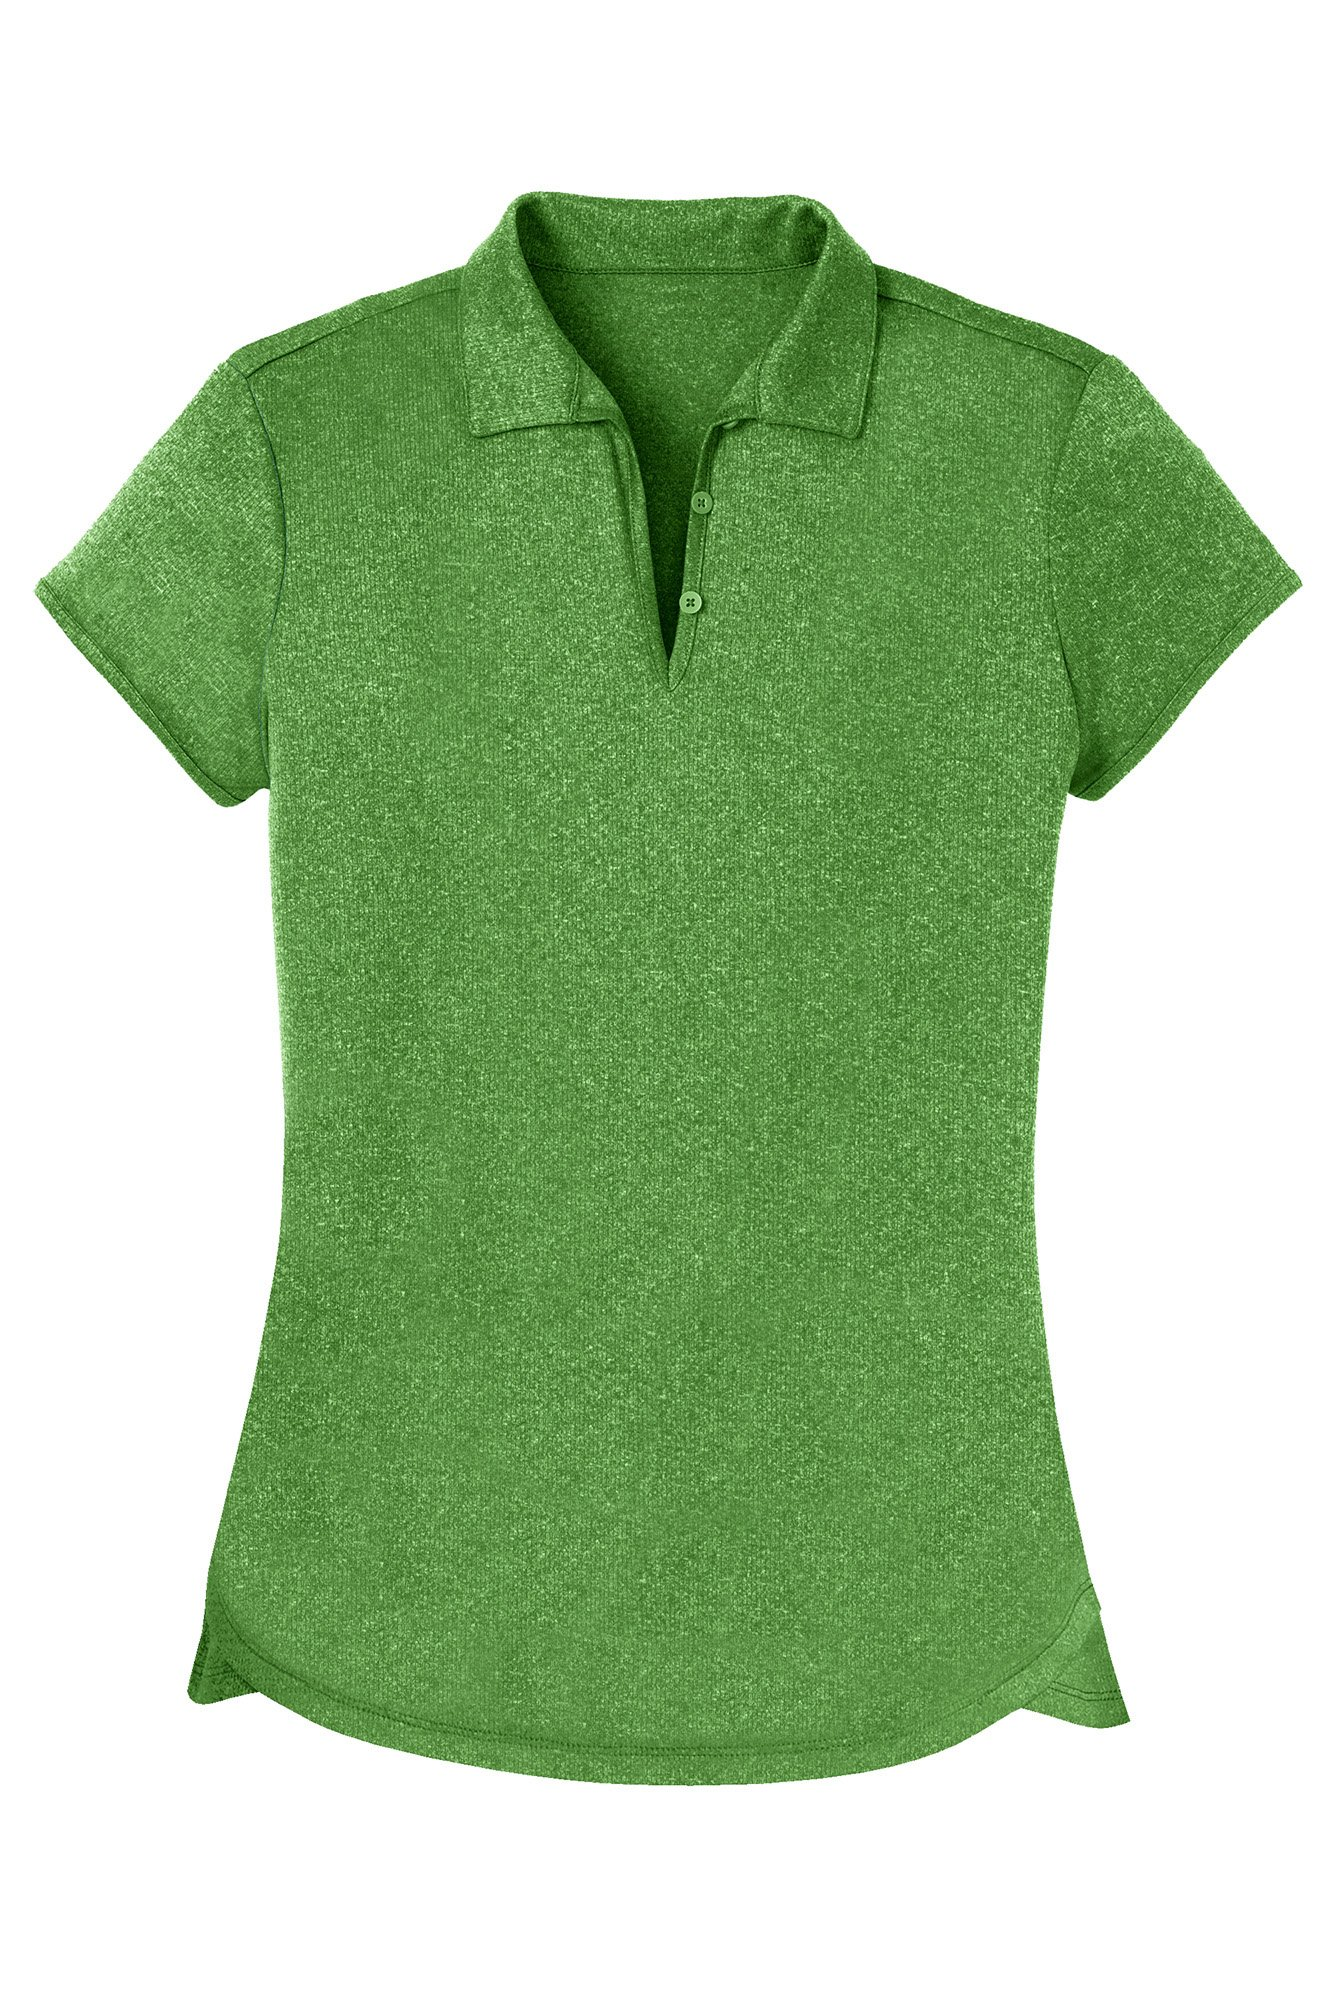 Opna Women's Ladies Moisture Wicking Athletic Golf Polo Shirts Tops & Tees Green by Opna